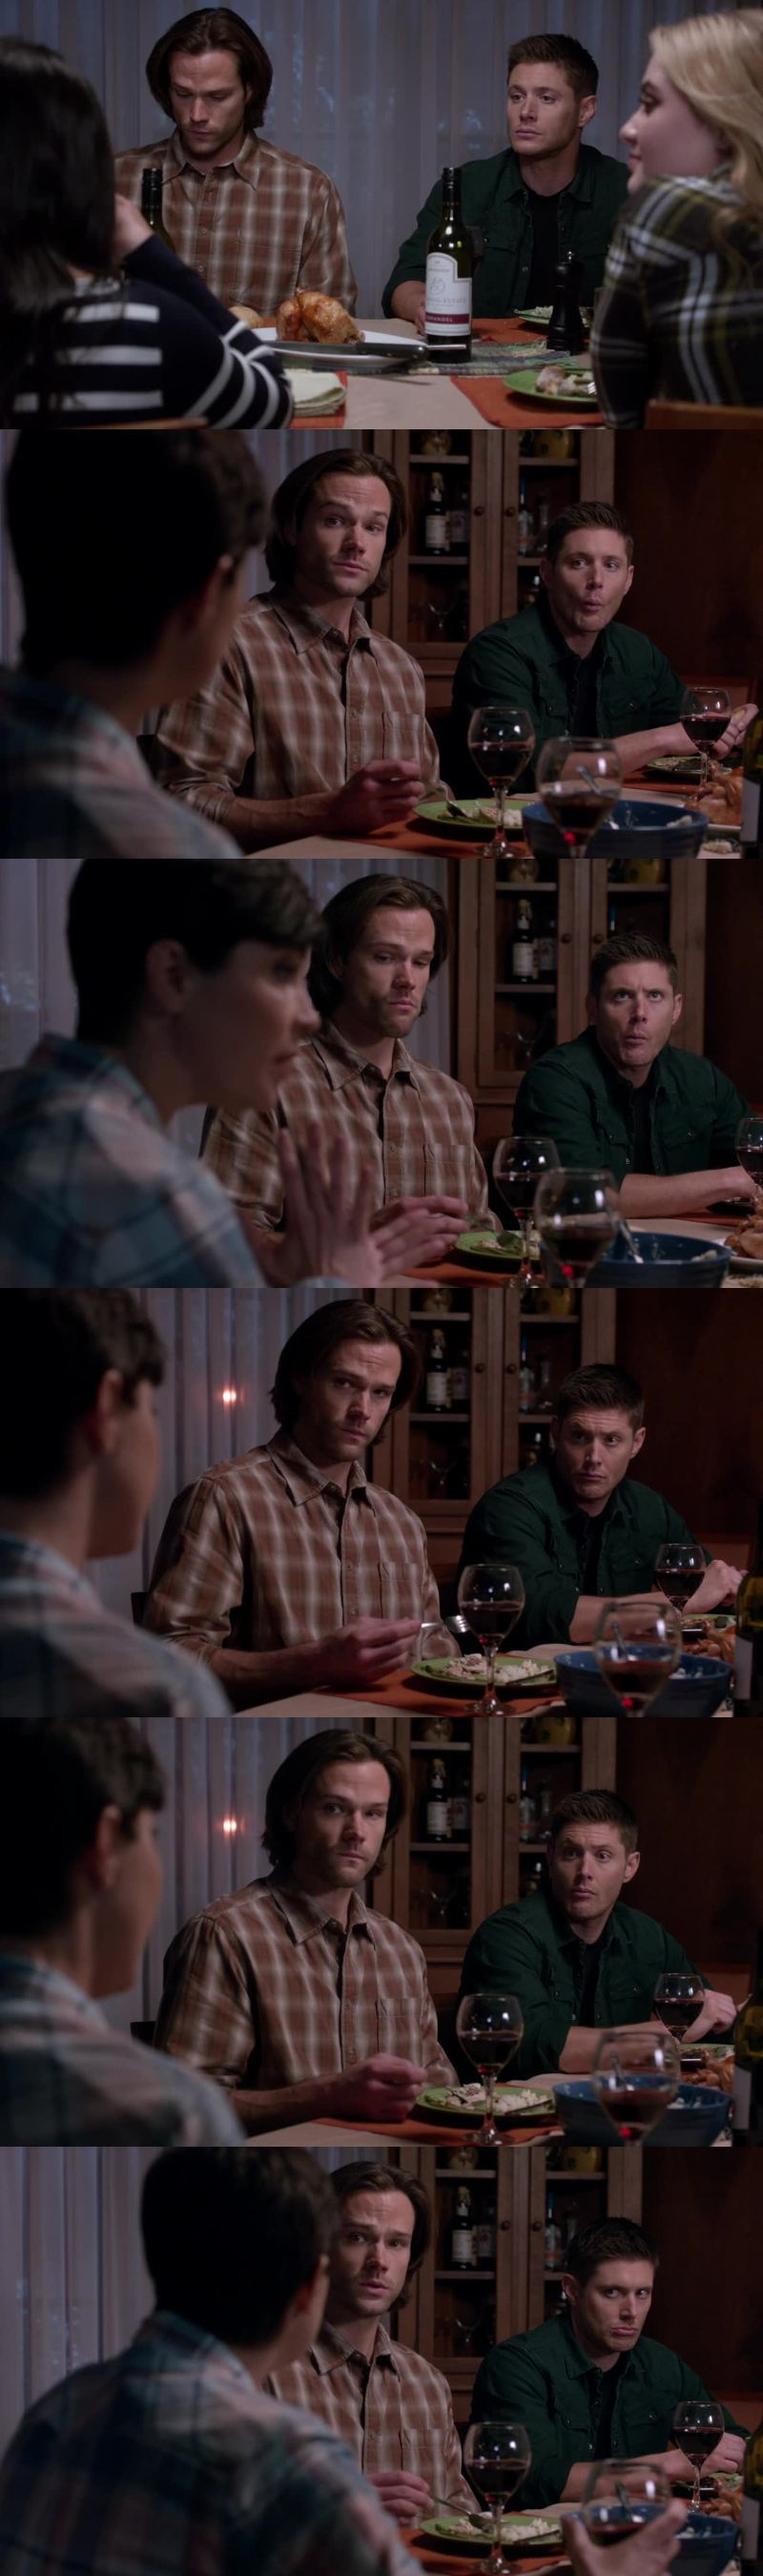 Dean face is priceless